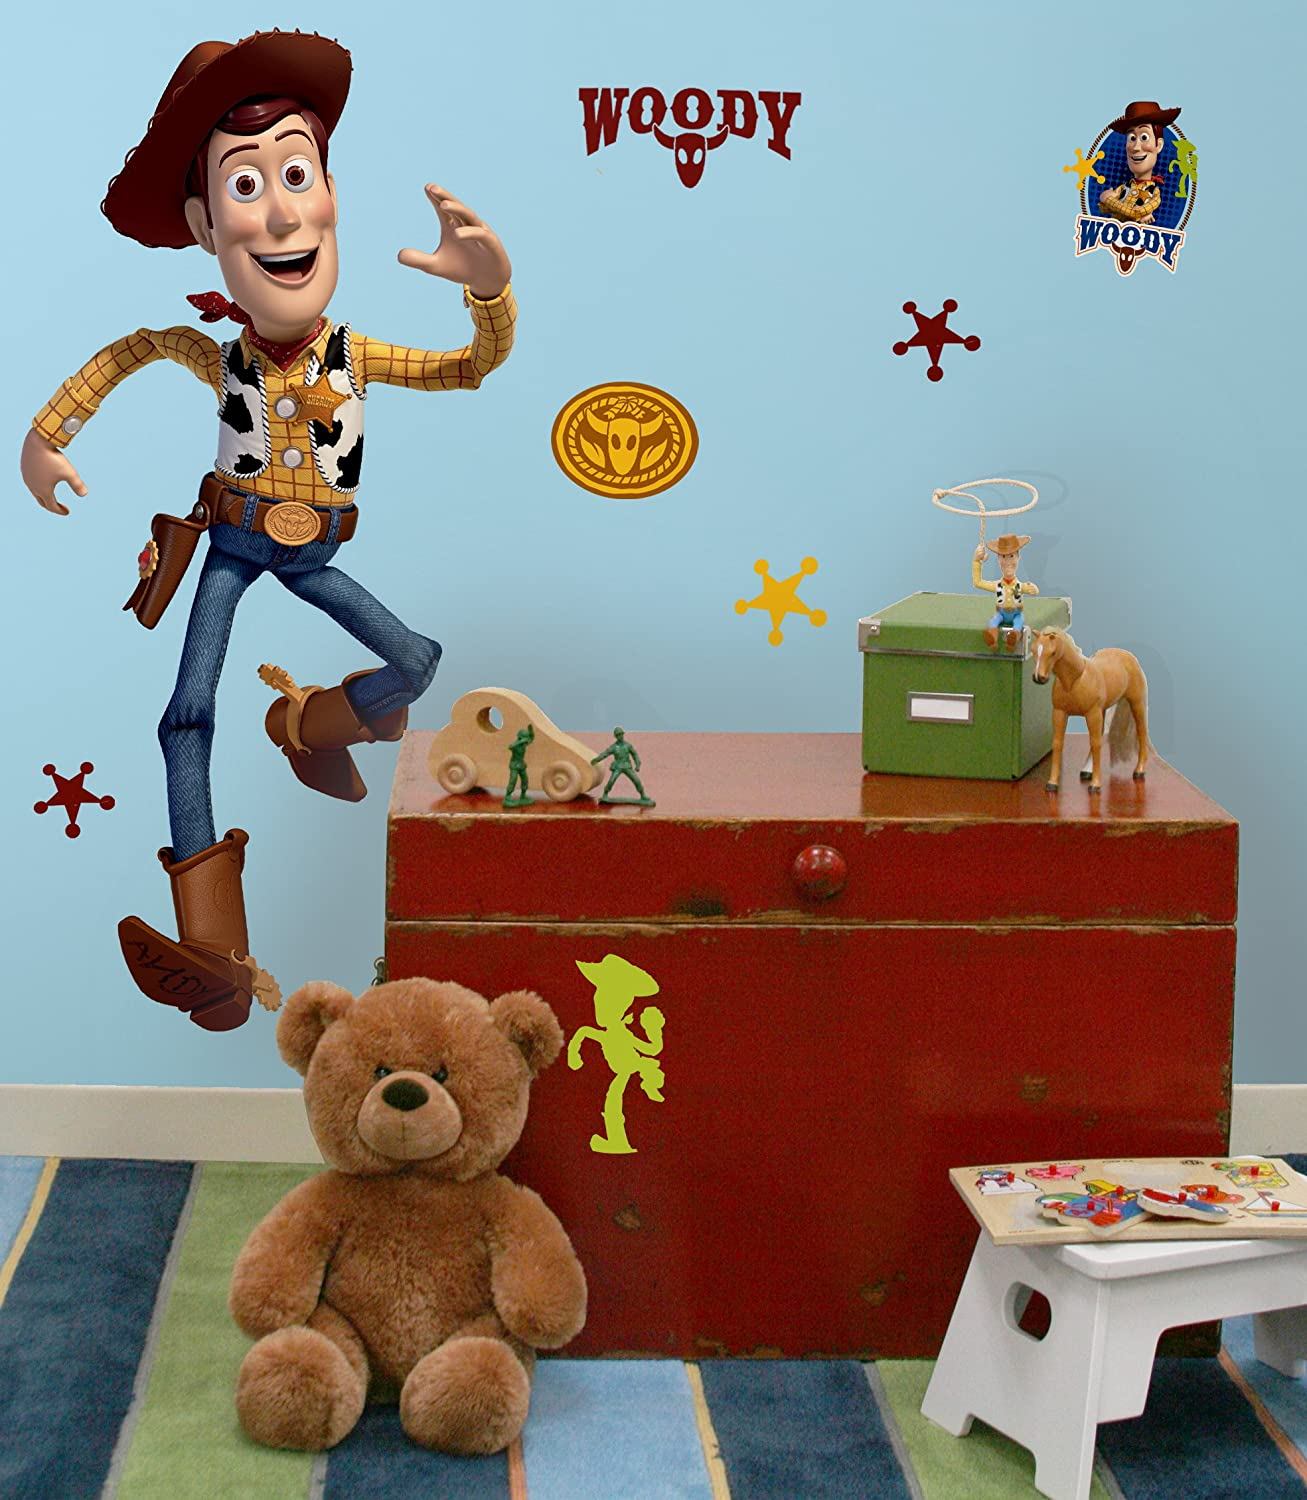 Amazon disney toy story 3 woody wall decal cutout 25x50 amazon disney toy story 3 woody wall decal cutout 25x50 home kitchen amipublicfo Image collections